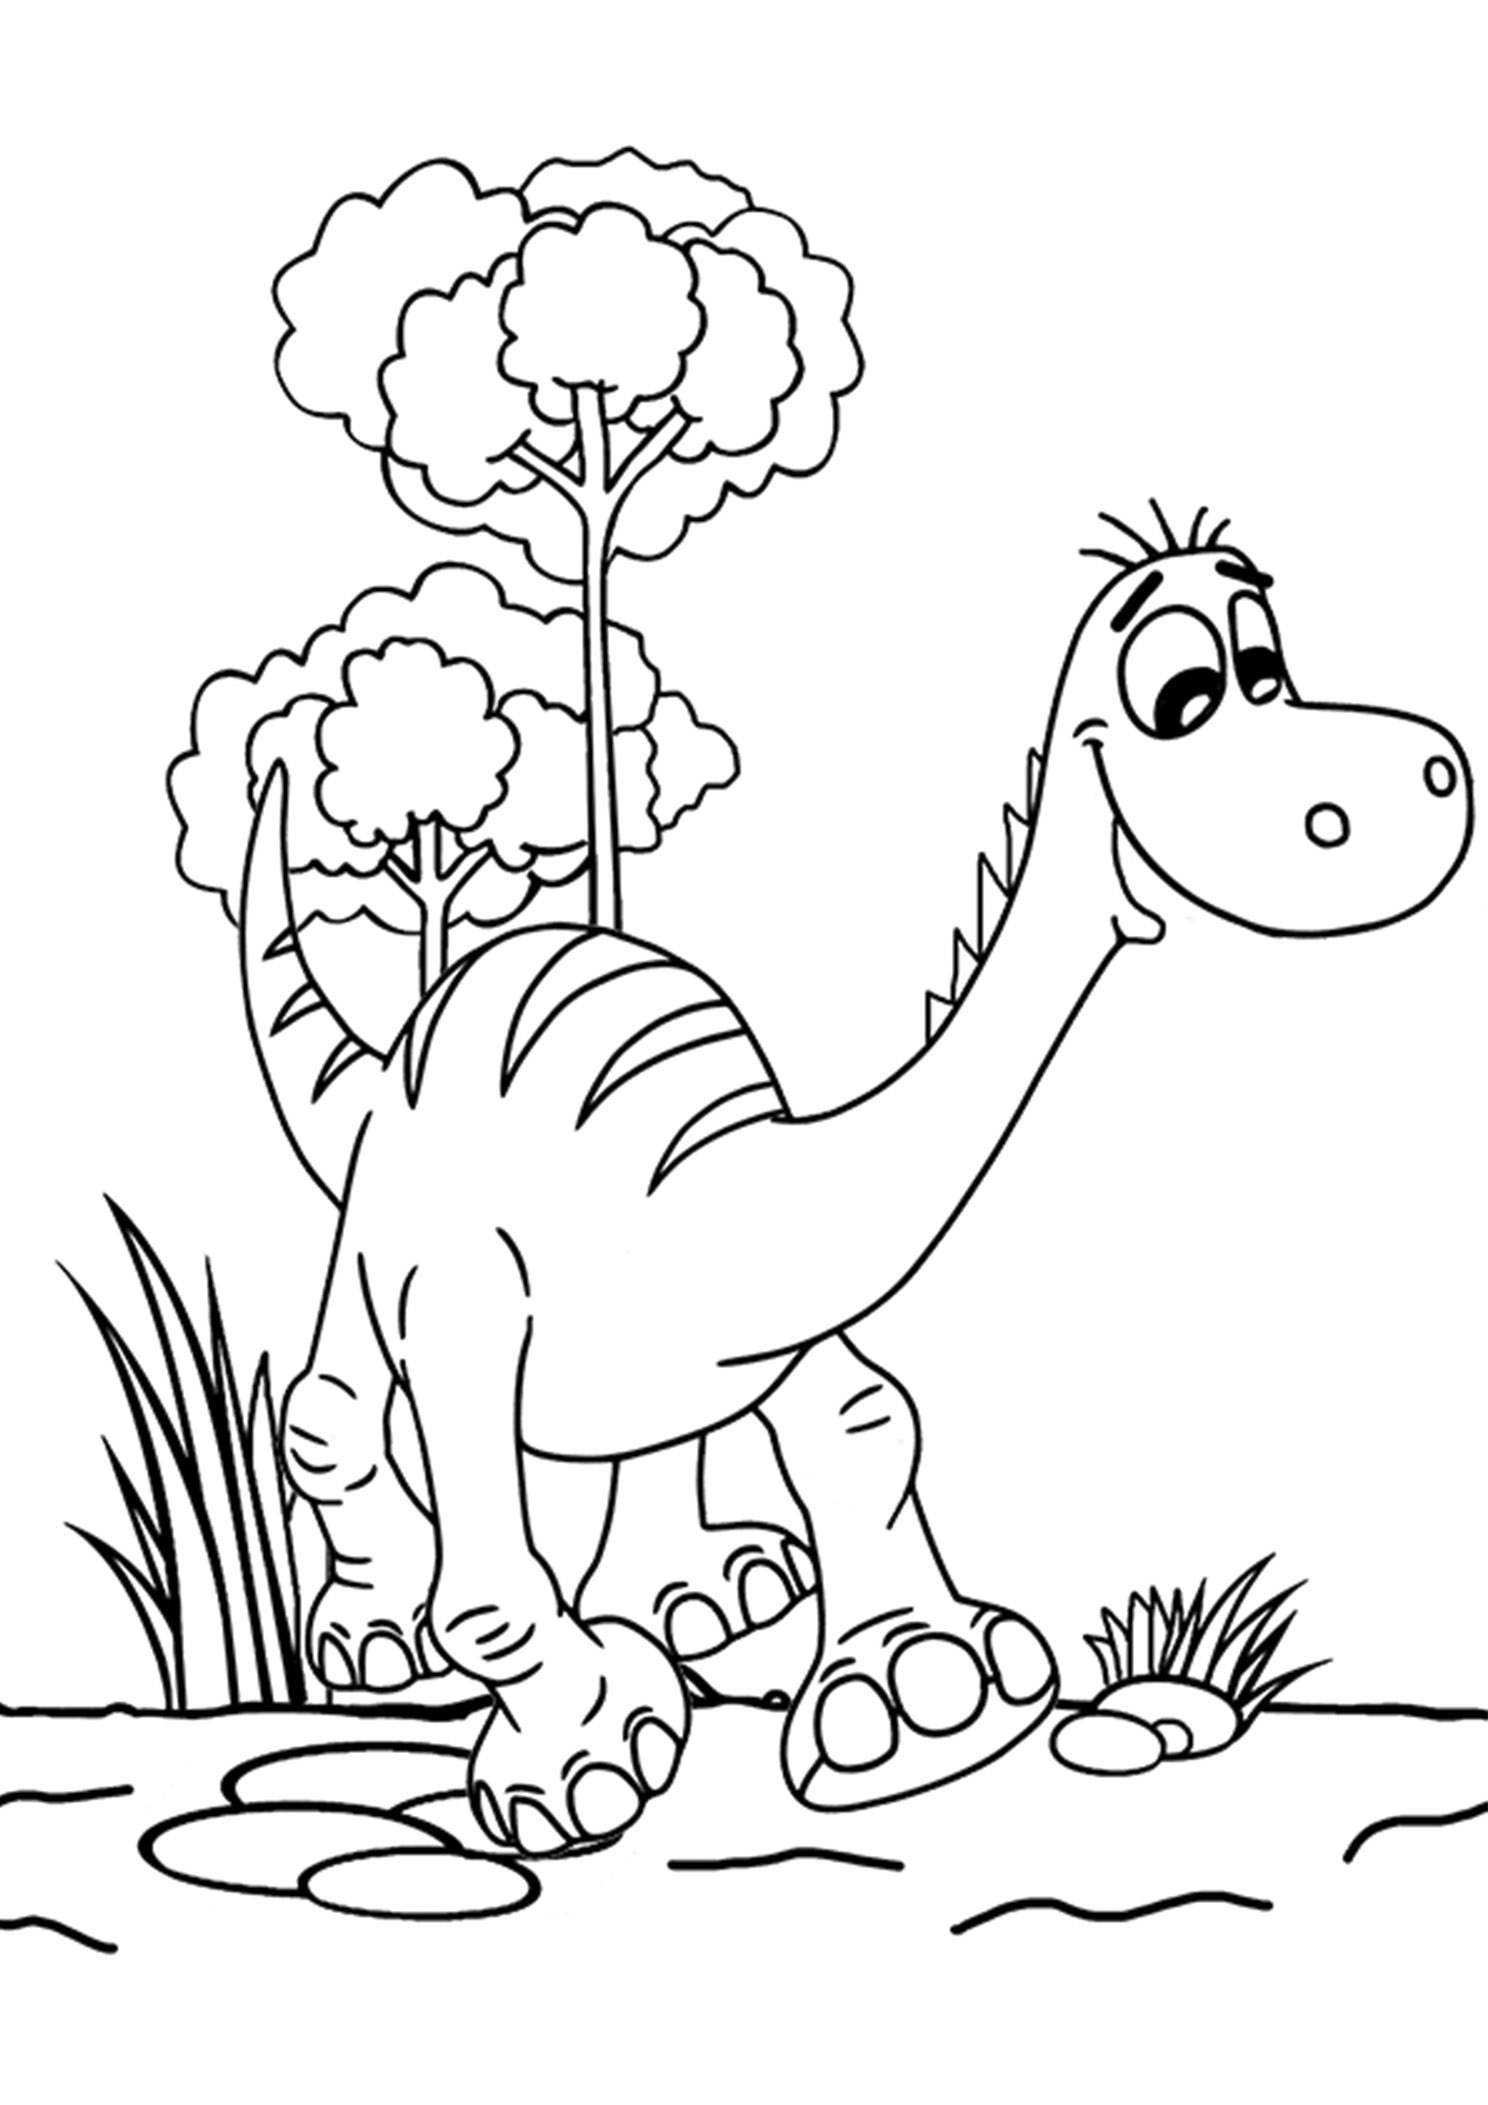 Dinosaure cartoon